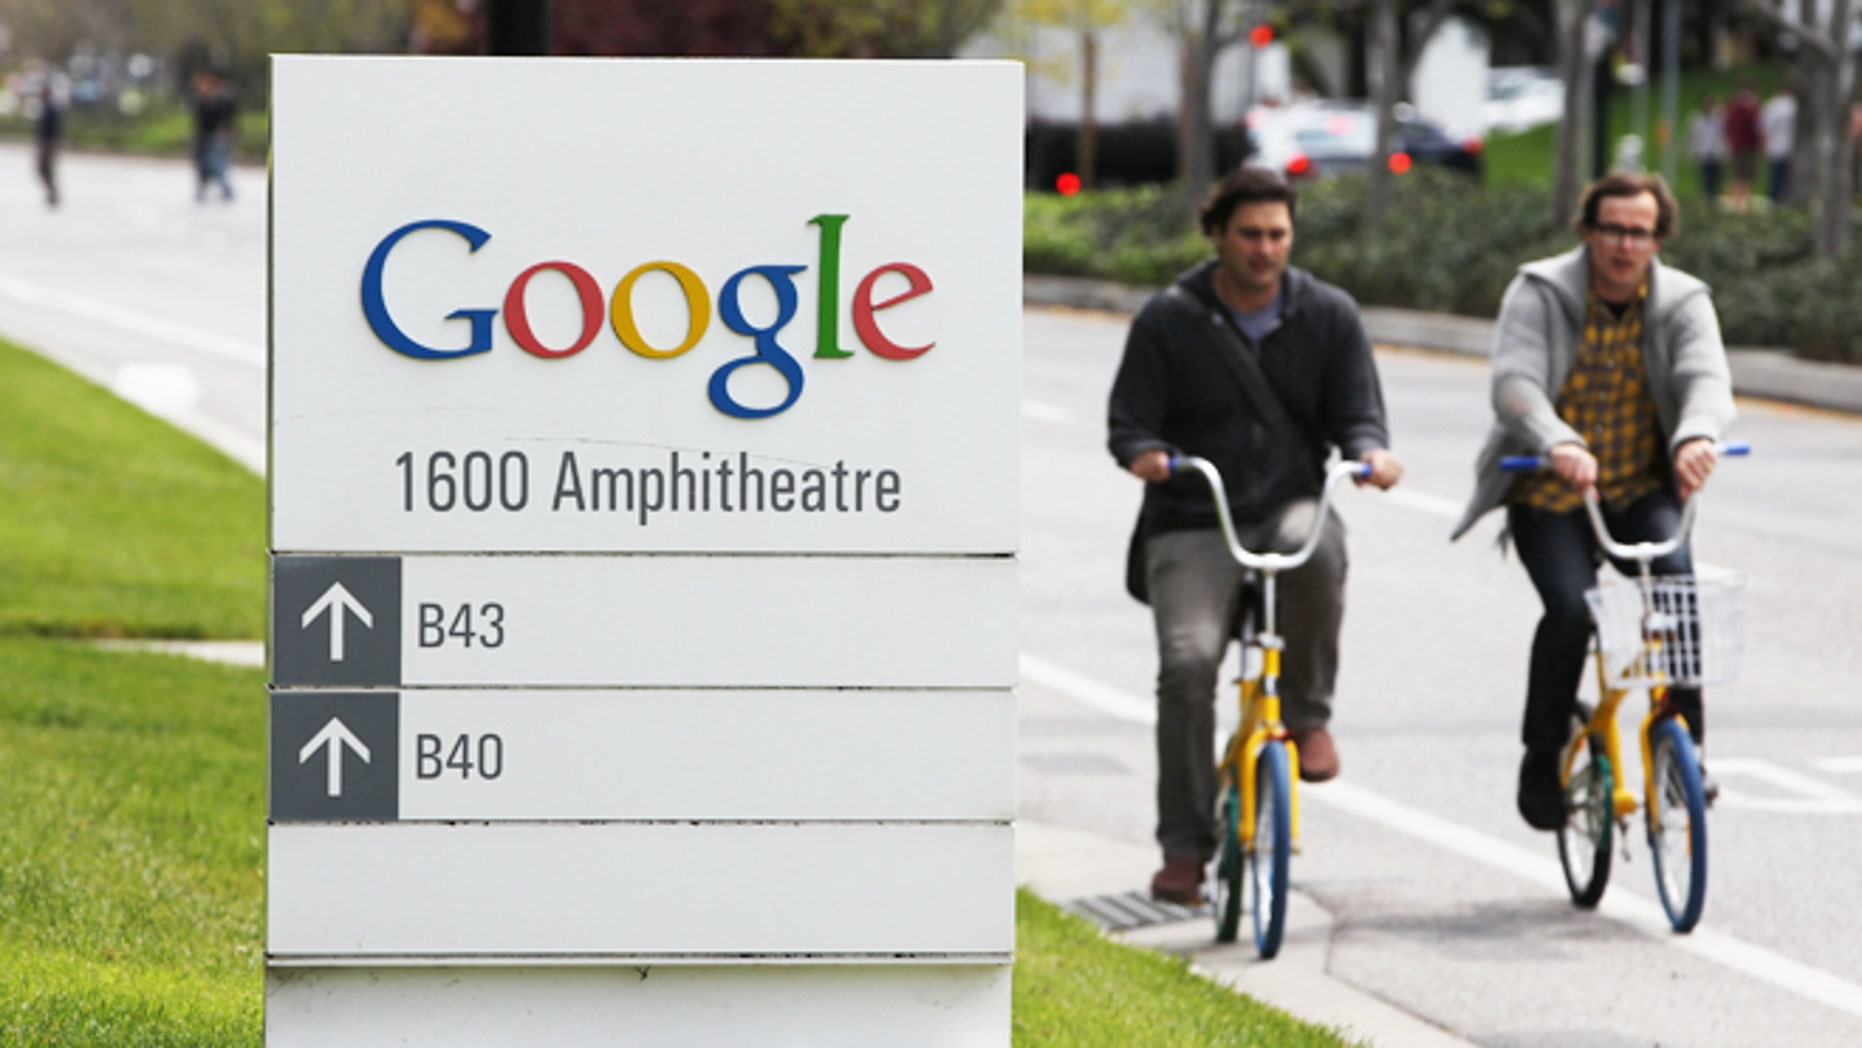 June 18, 2013: Google sharply challenged the federal government's gag order on its Internet surveillance program, citing what it described as a First Amendment right to divulge how many requests it receives from the government for data about its customers in the name of national security.